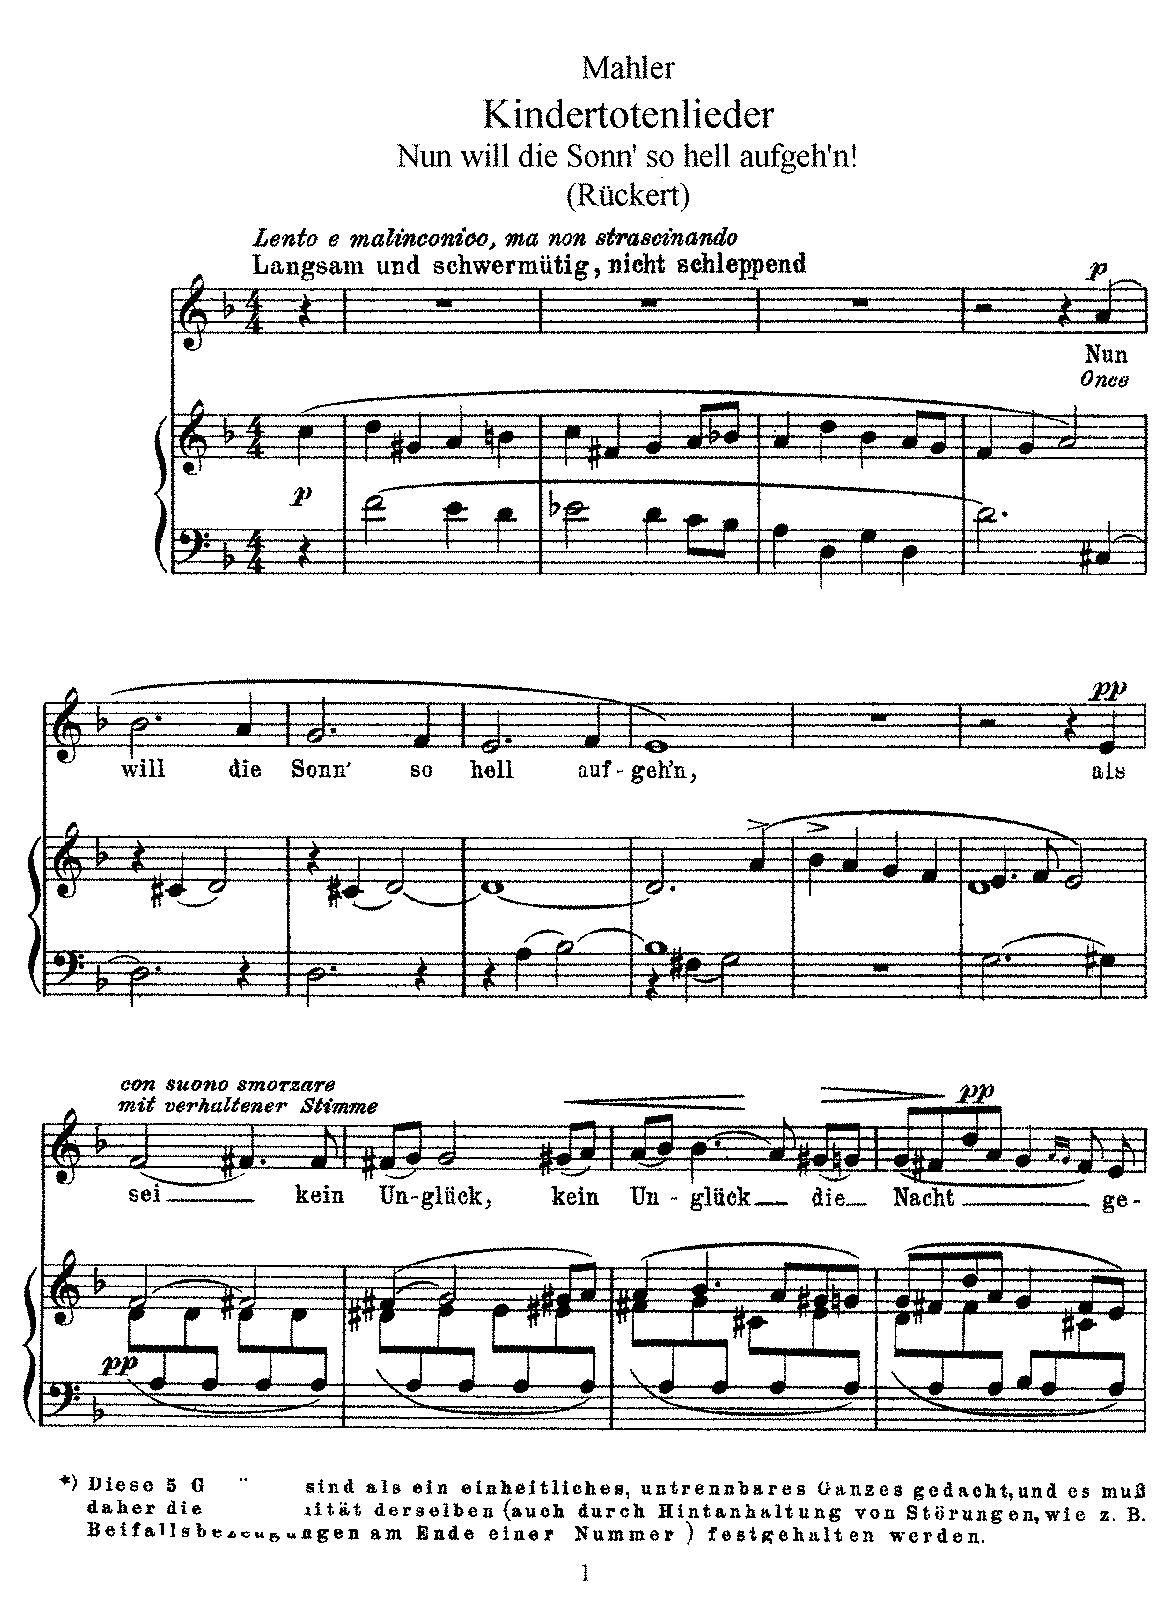 PMLP01822-Mahler - Kindertotenlieder (voice and piano).pdf